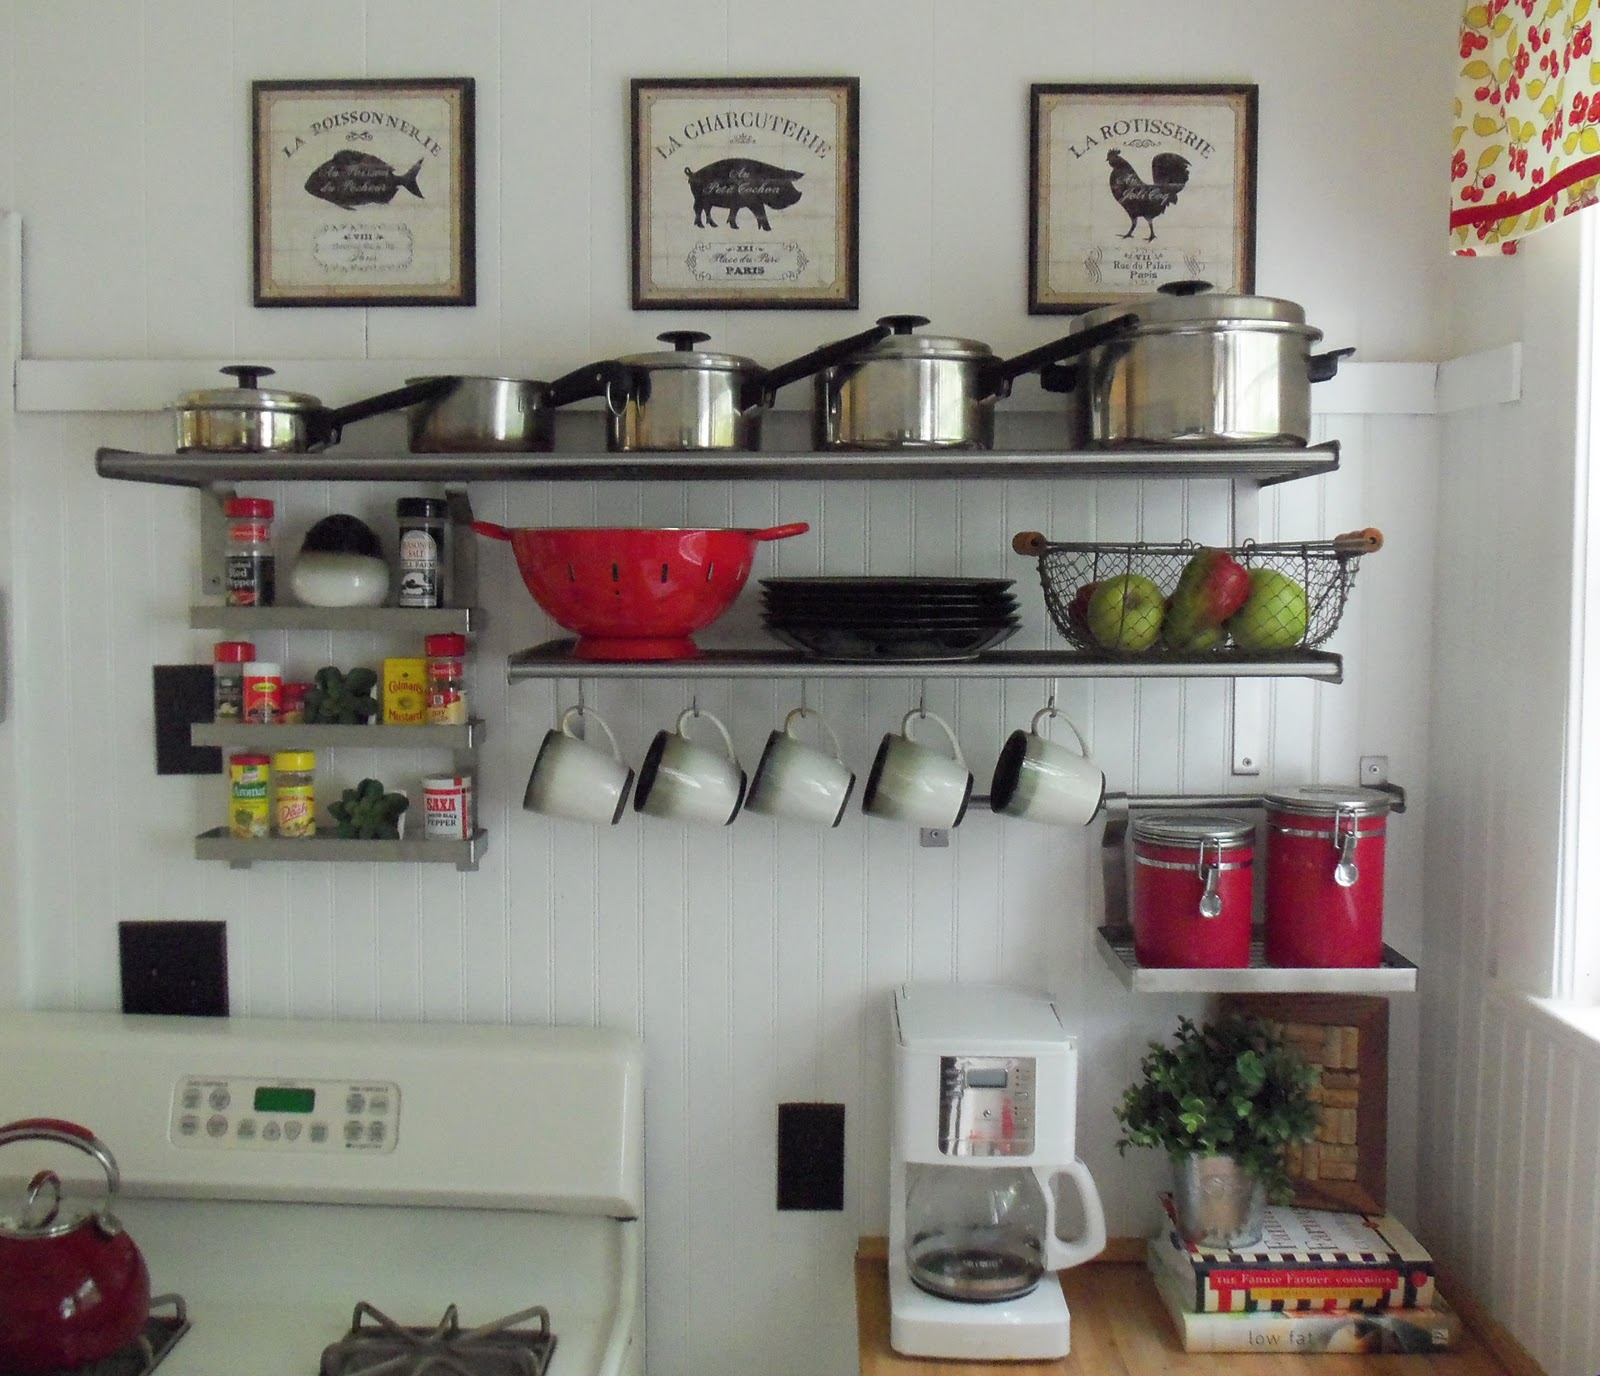 Ikea Grundtal Wall Shelf In Kitchen